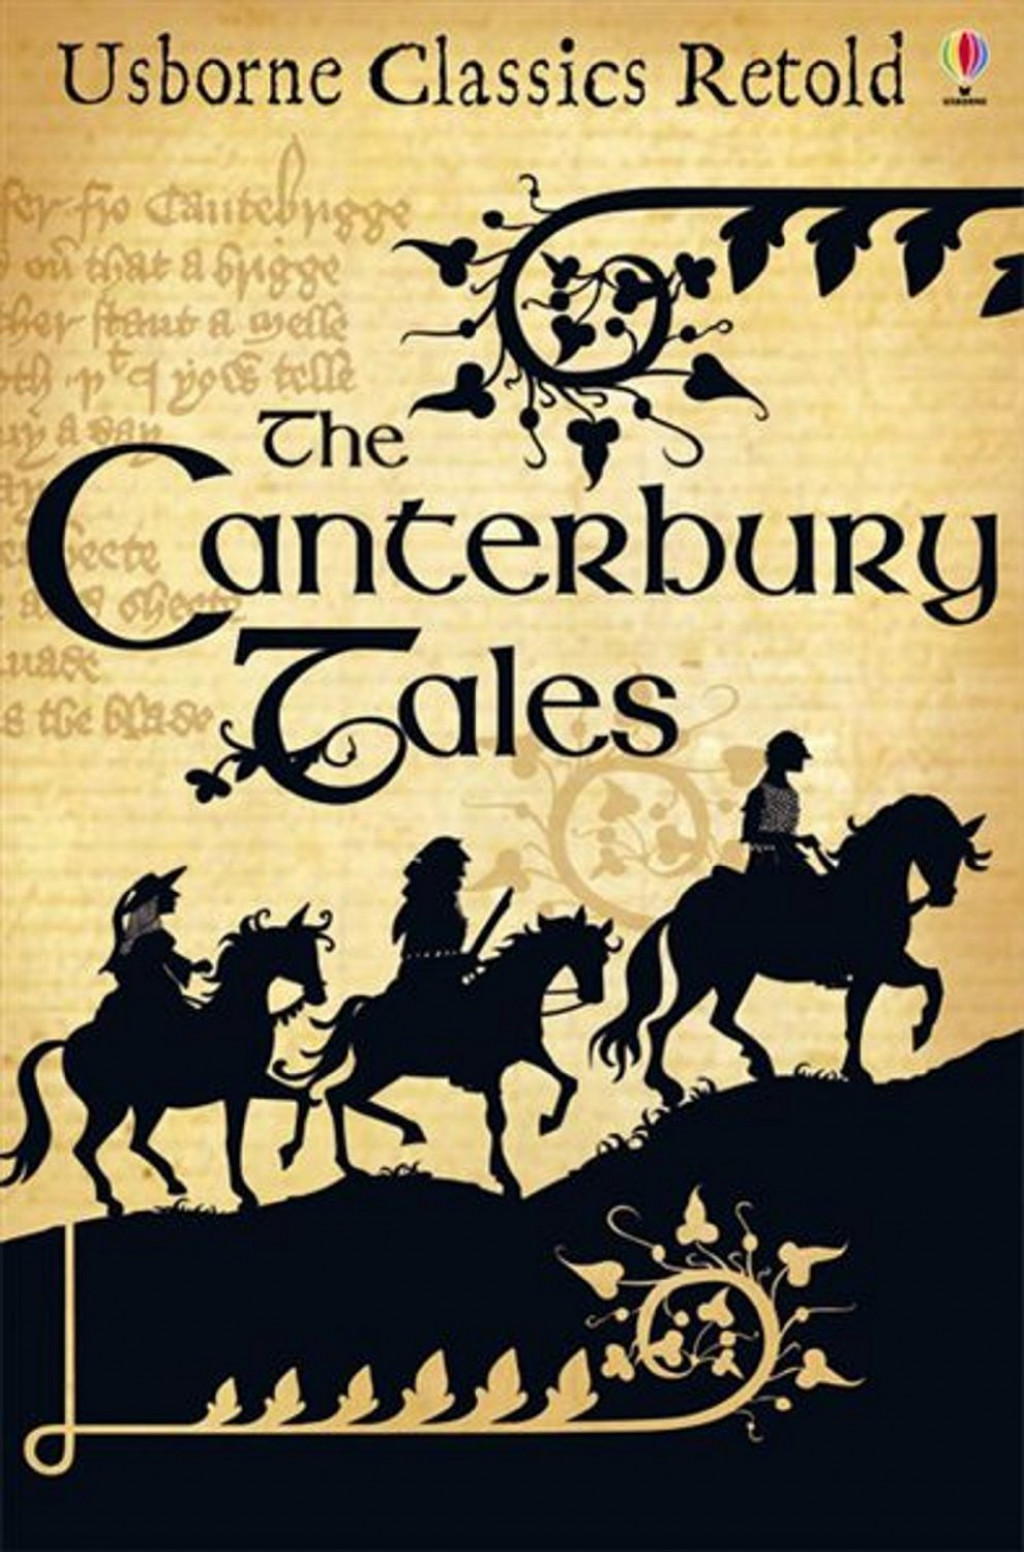 an analysis of the use of stereotypes in geoffrey chaucers collection of stories the canterbury tale The canterbury tales, a collection of stories by geoffrey chaucer, was written during the middle ages – an unstable period in western european history.